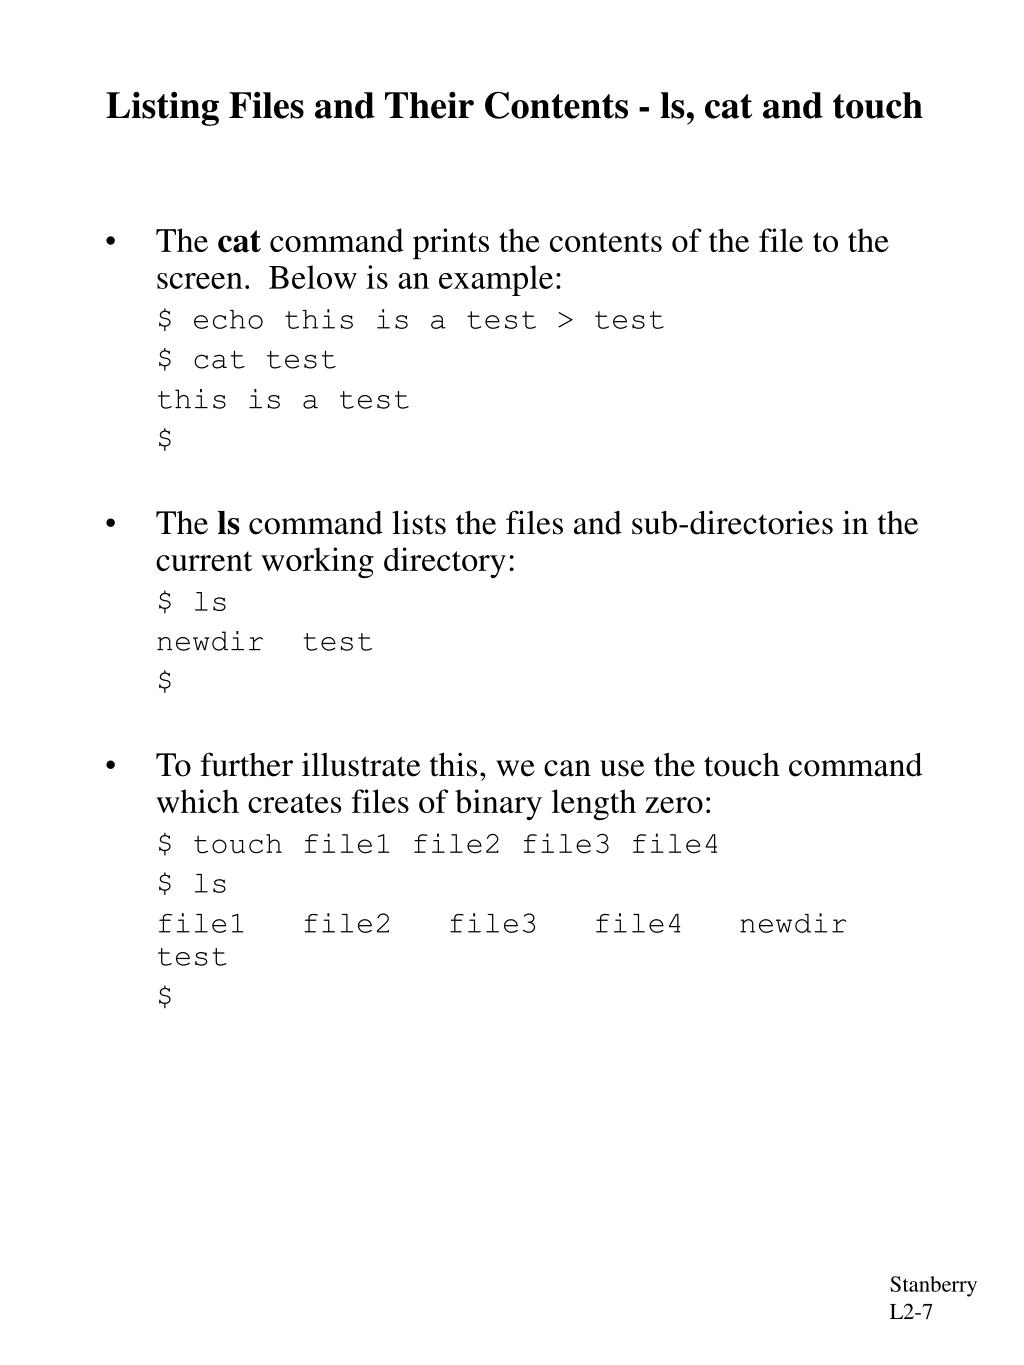 Listing Files and Their Contents - ls, cat and touch